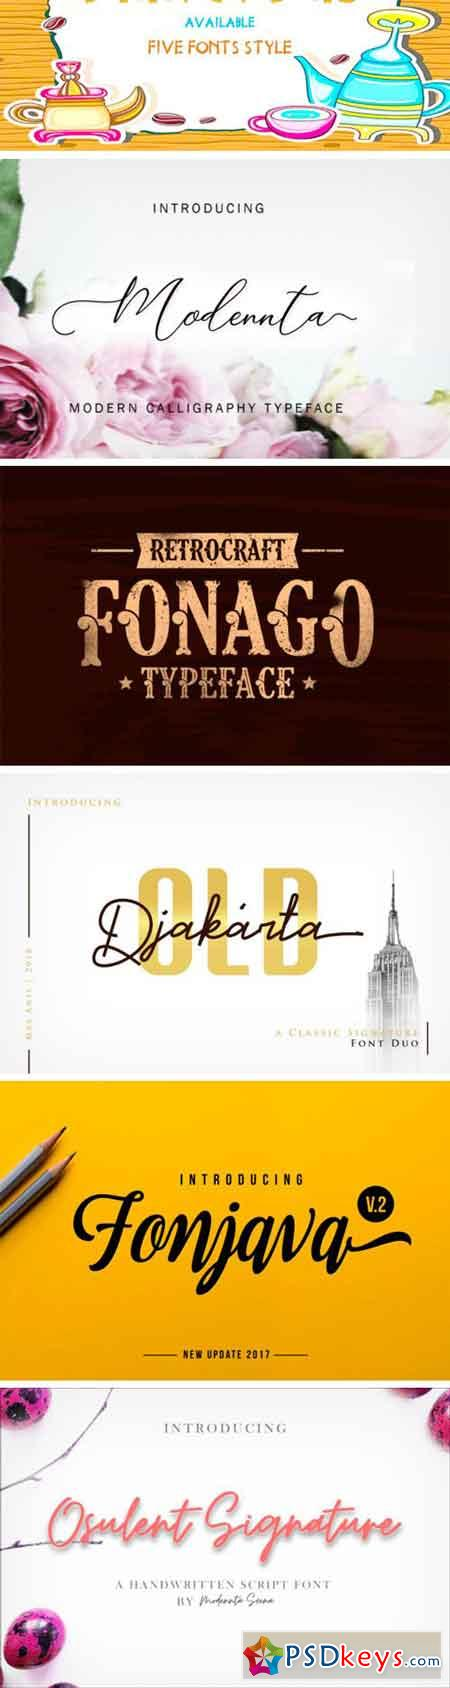 16 Premium Fonts Bundle Vol. 2